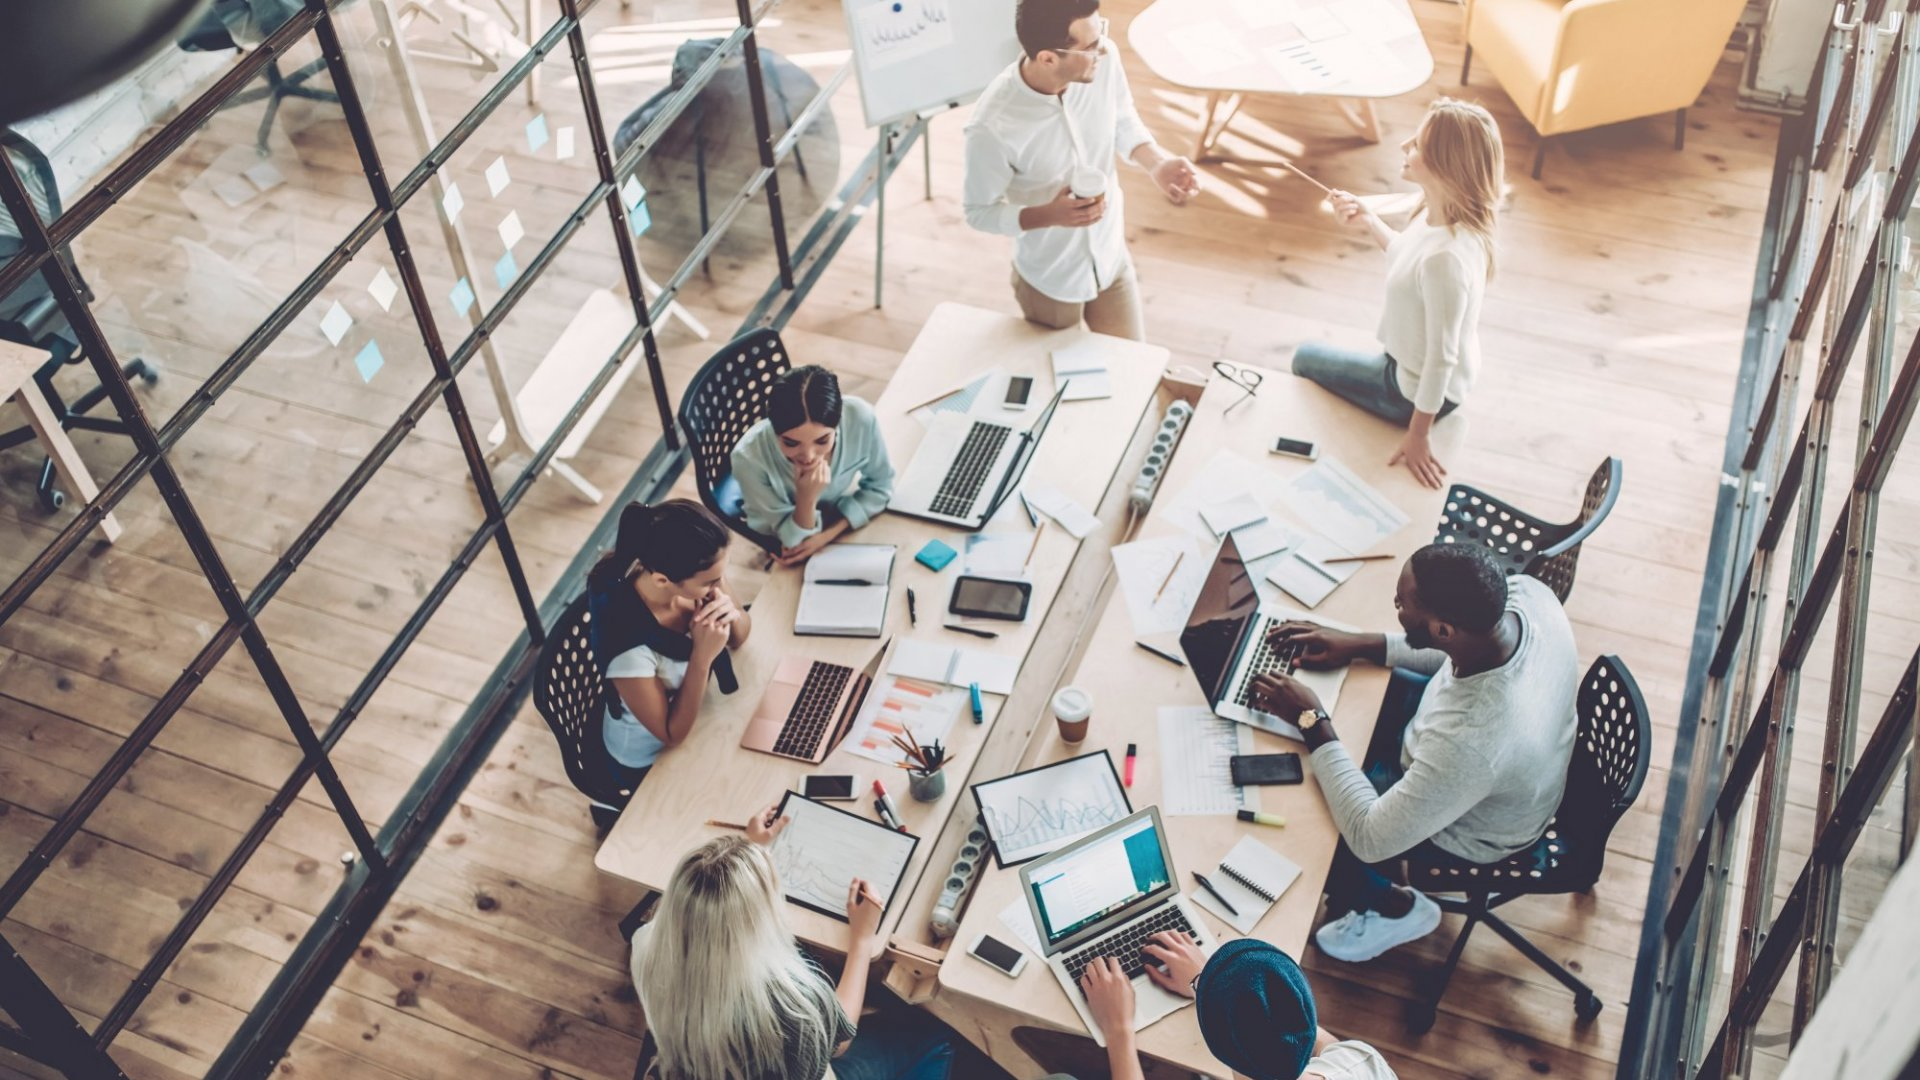 How Much You Should Share About Your Company With Your Team